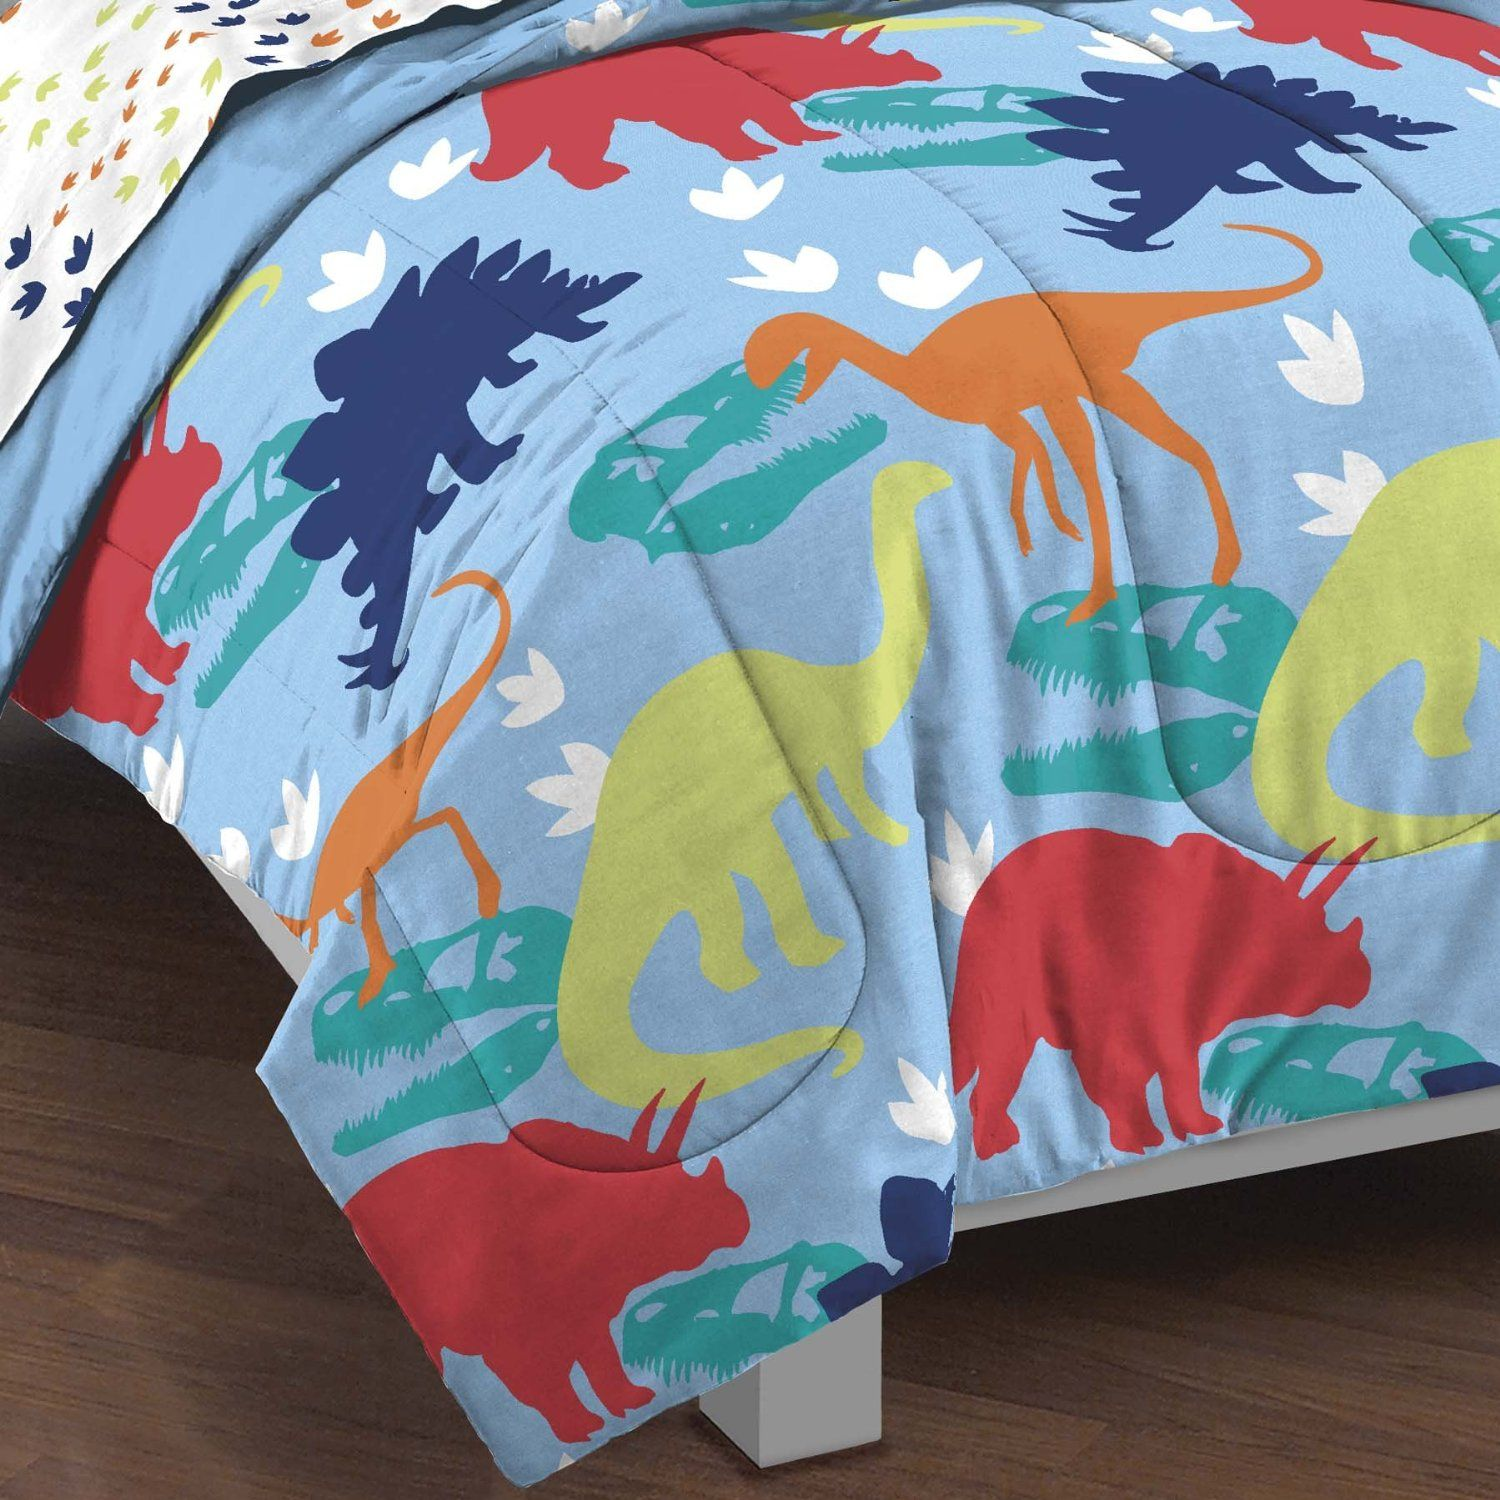 Amazon.com: Dream Factory Dinosaur Prints Boys Comforter Set, Multi-Colored, Twin: Bedding & Bath